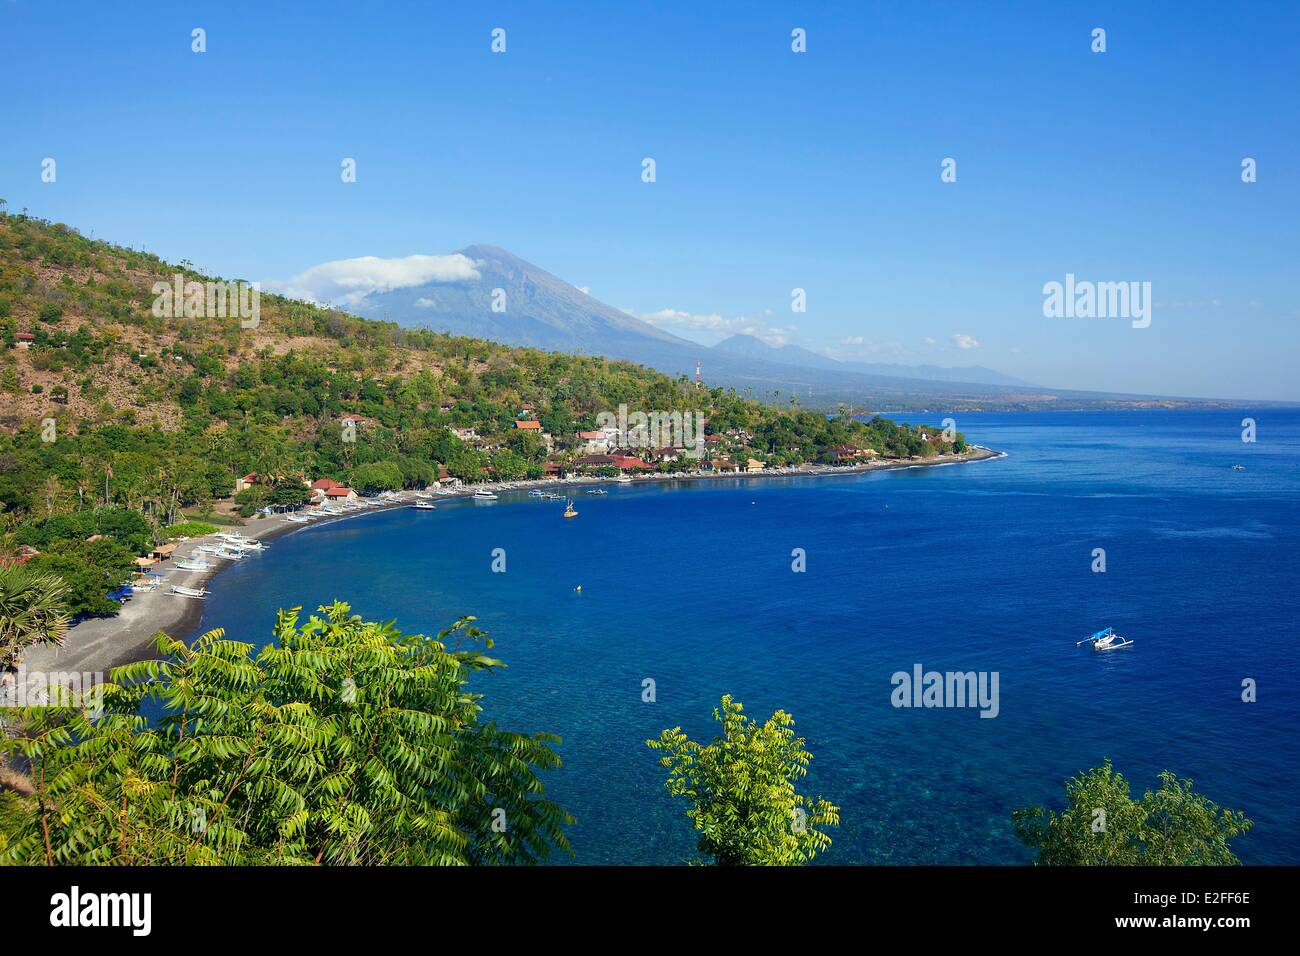 Indonesia, Bali, East Coast, Mount Agung and Amed - Stock Image